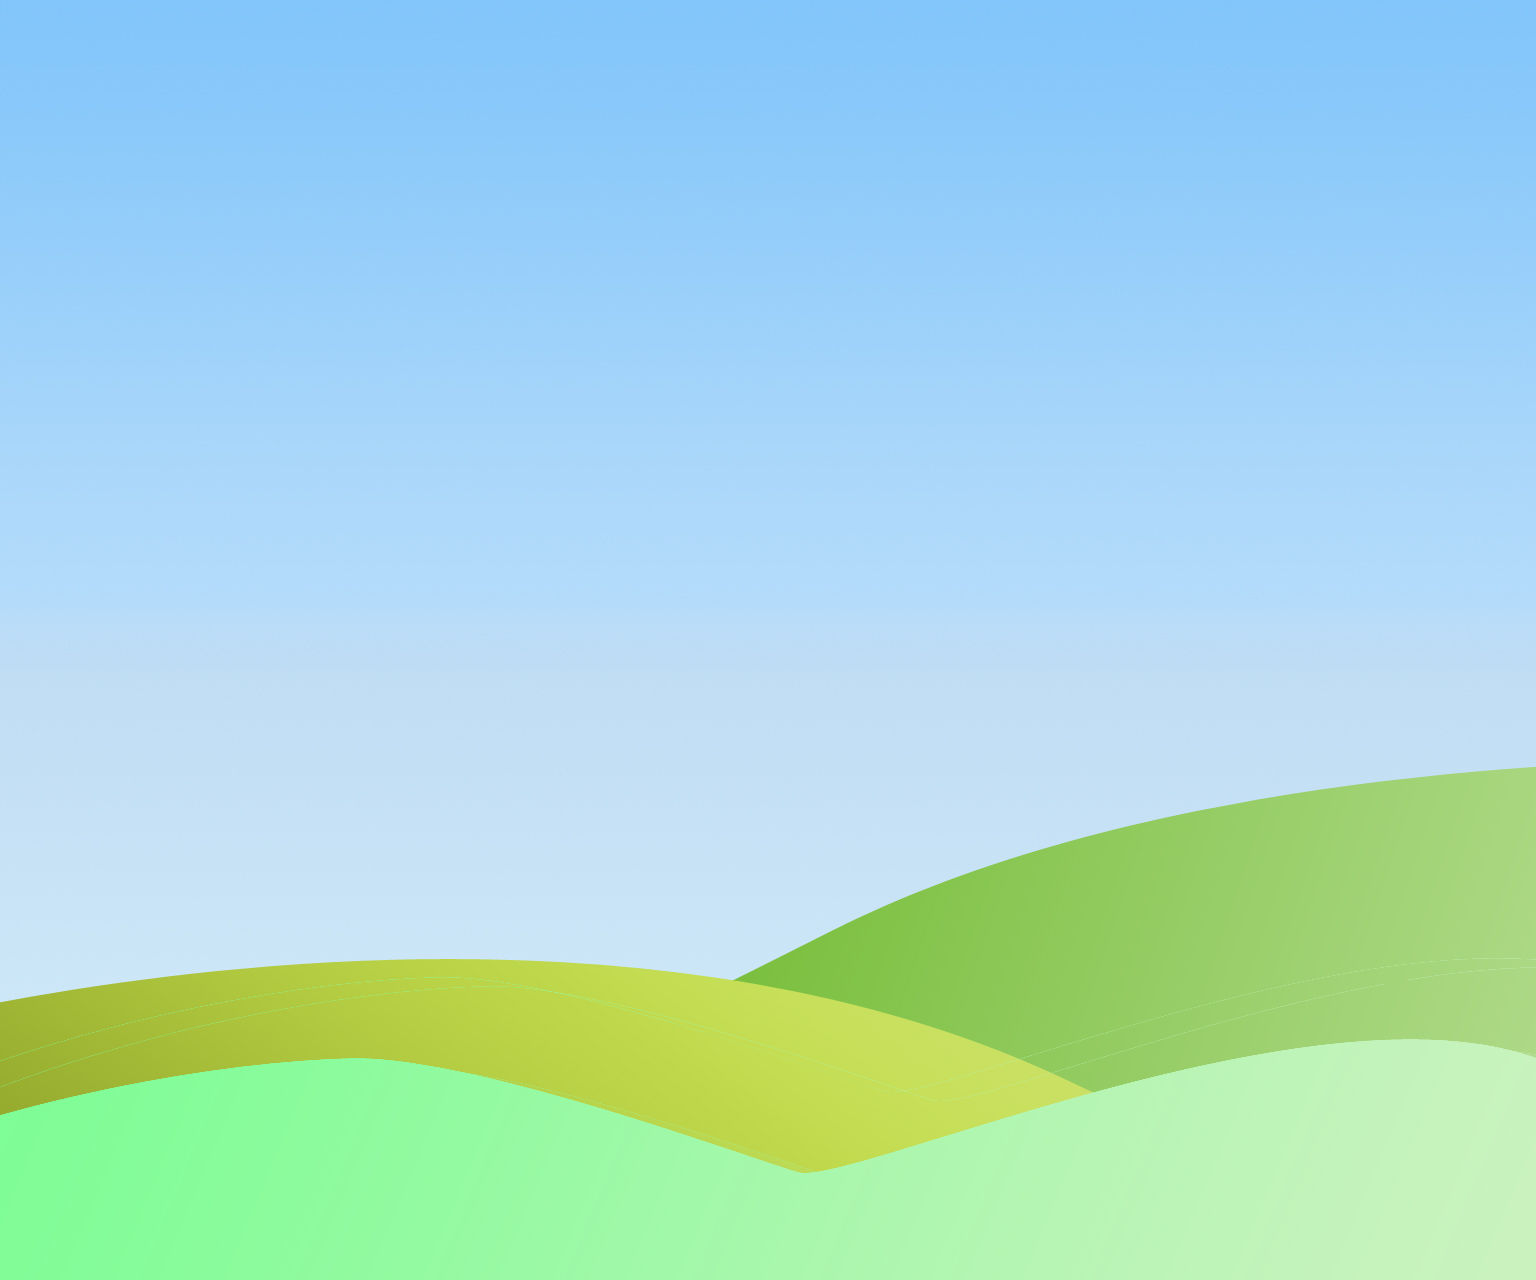 Rolling Hills Clipart - Clipart Suggest